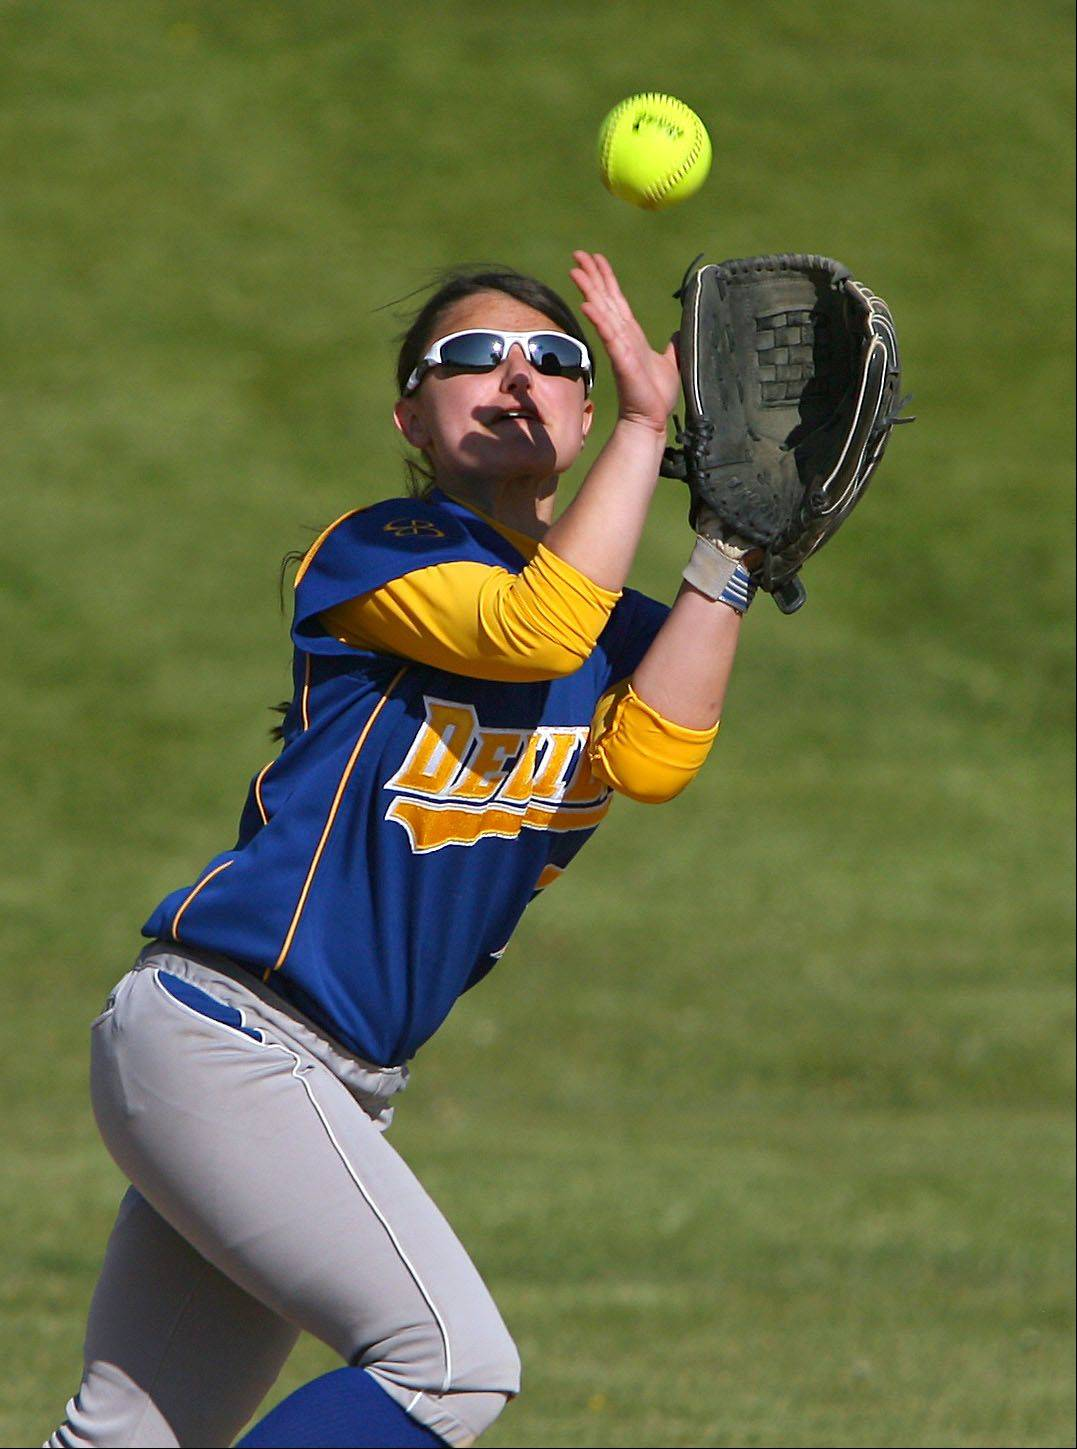 Warren's Jill Fox makes a catch in the infield during their game Tuesday at Lake Zurich High School.